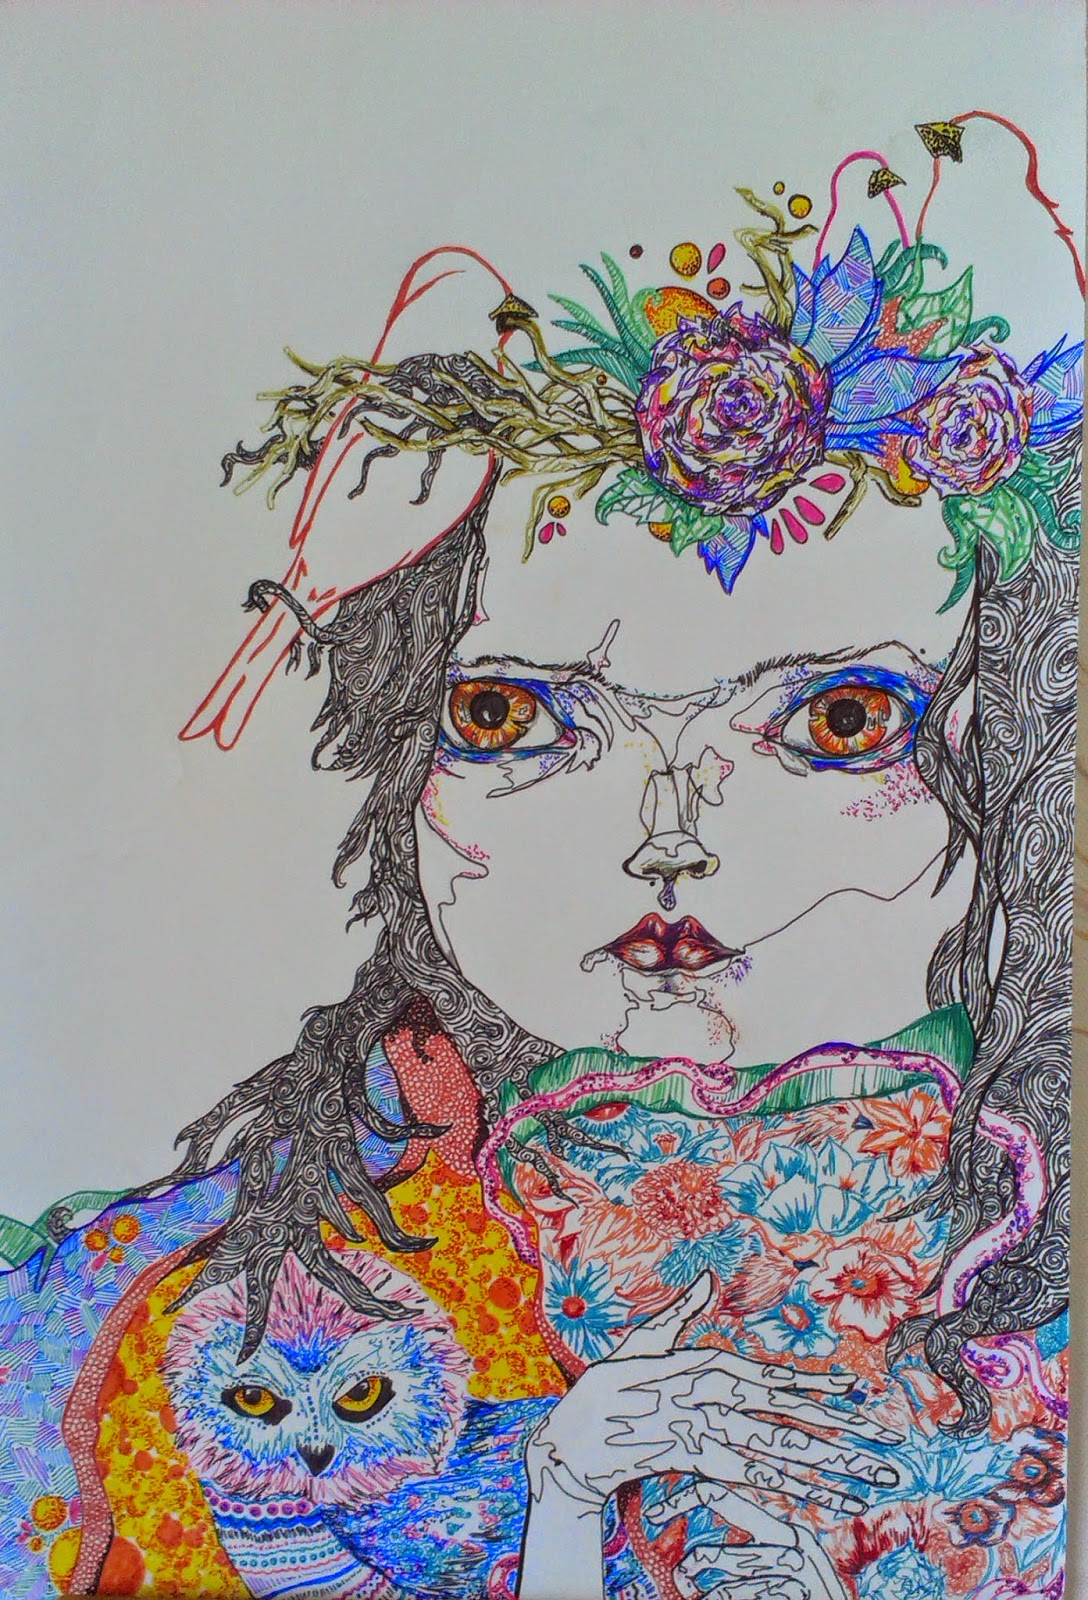 del kathryn barton Browse artworks and exhibitions by del kathryn barton view now on ocula.